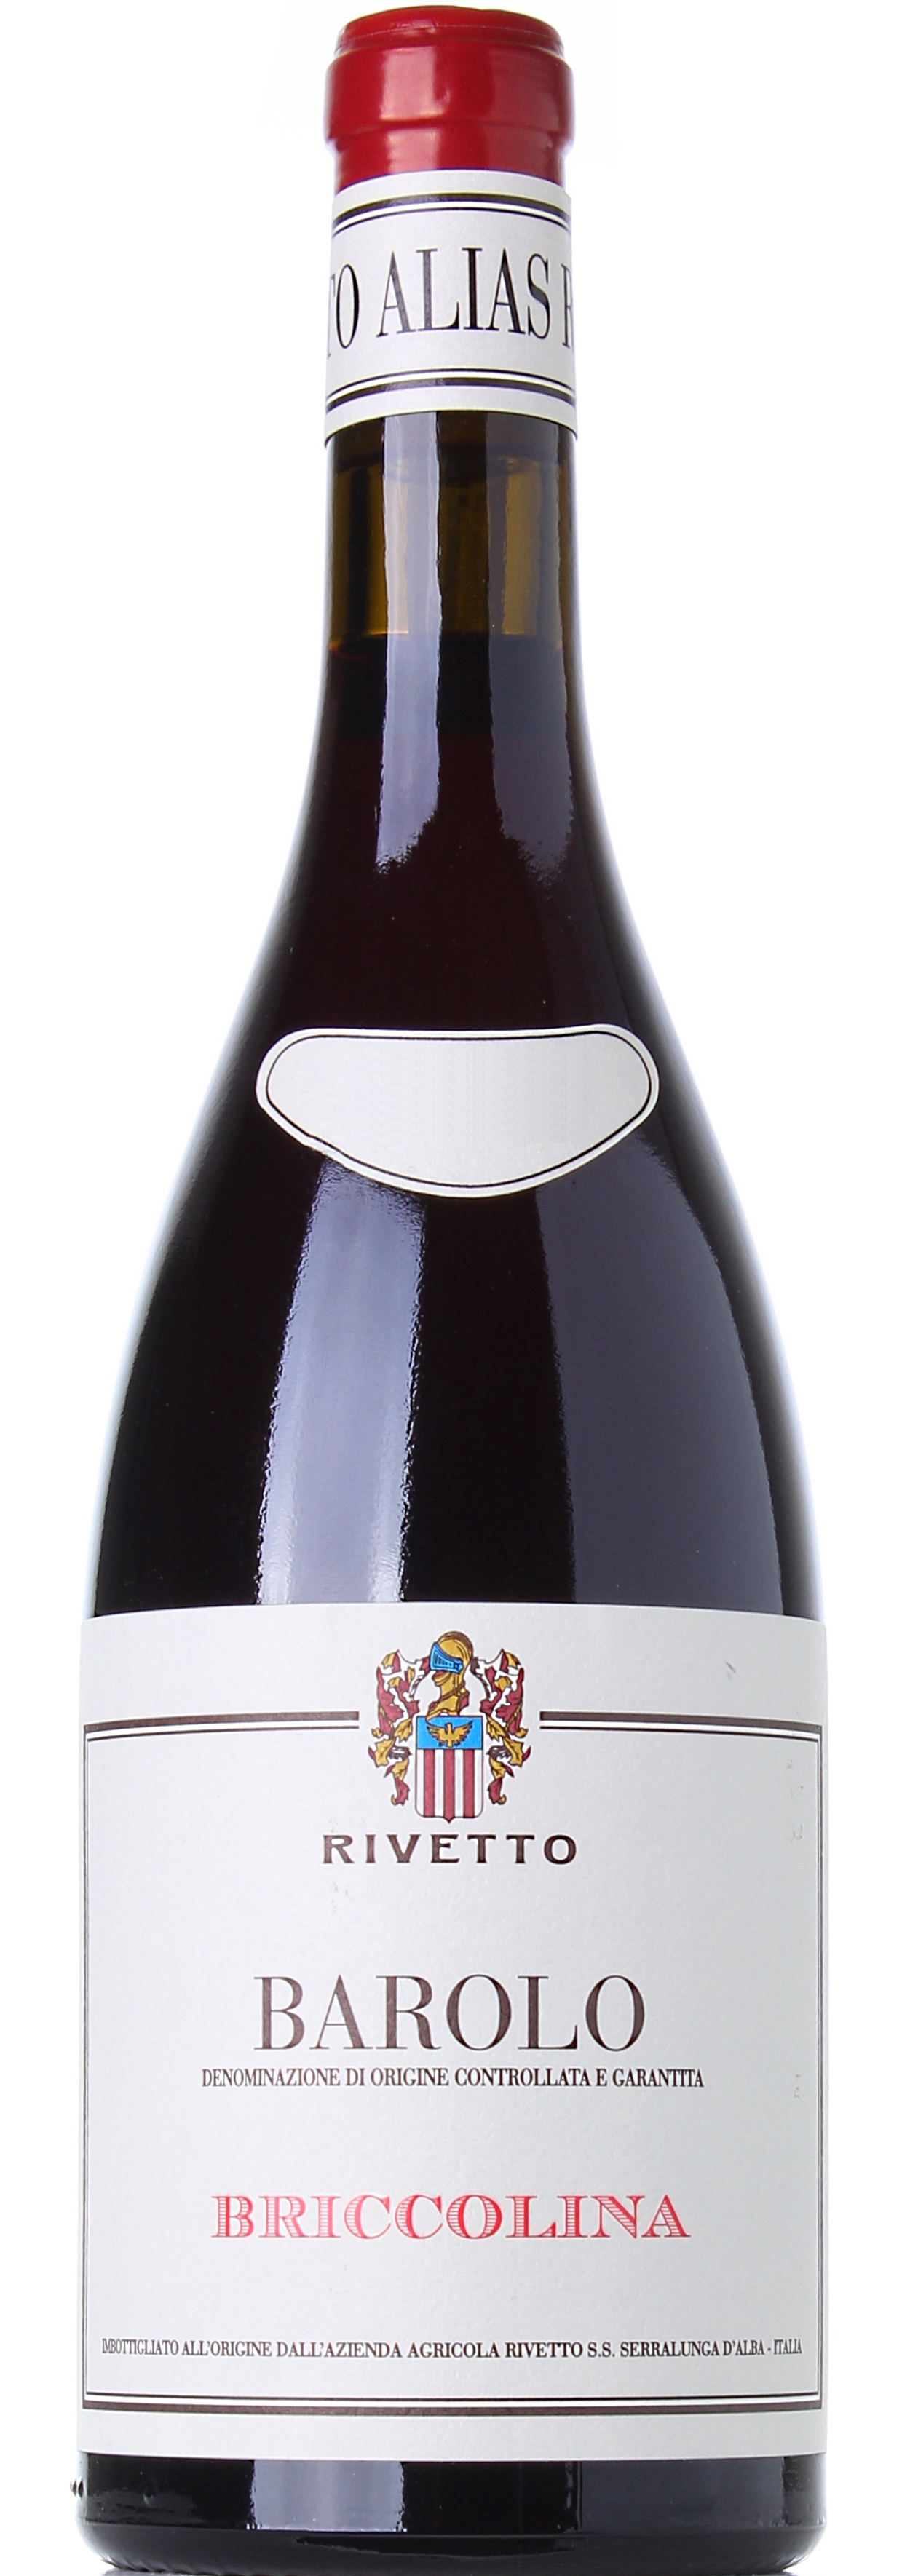 RIVETTO BAROLO BRICCOLINA 2009